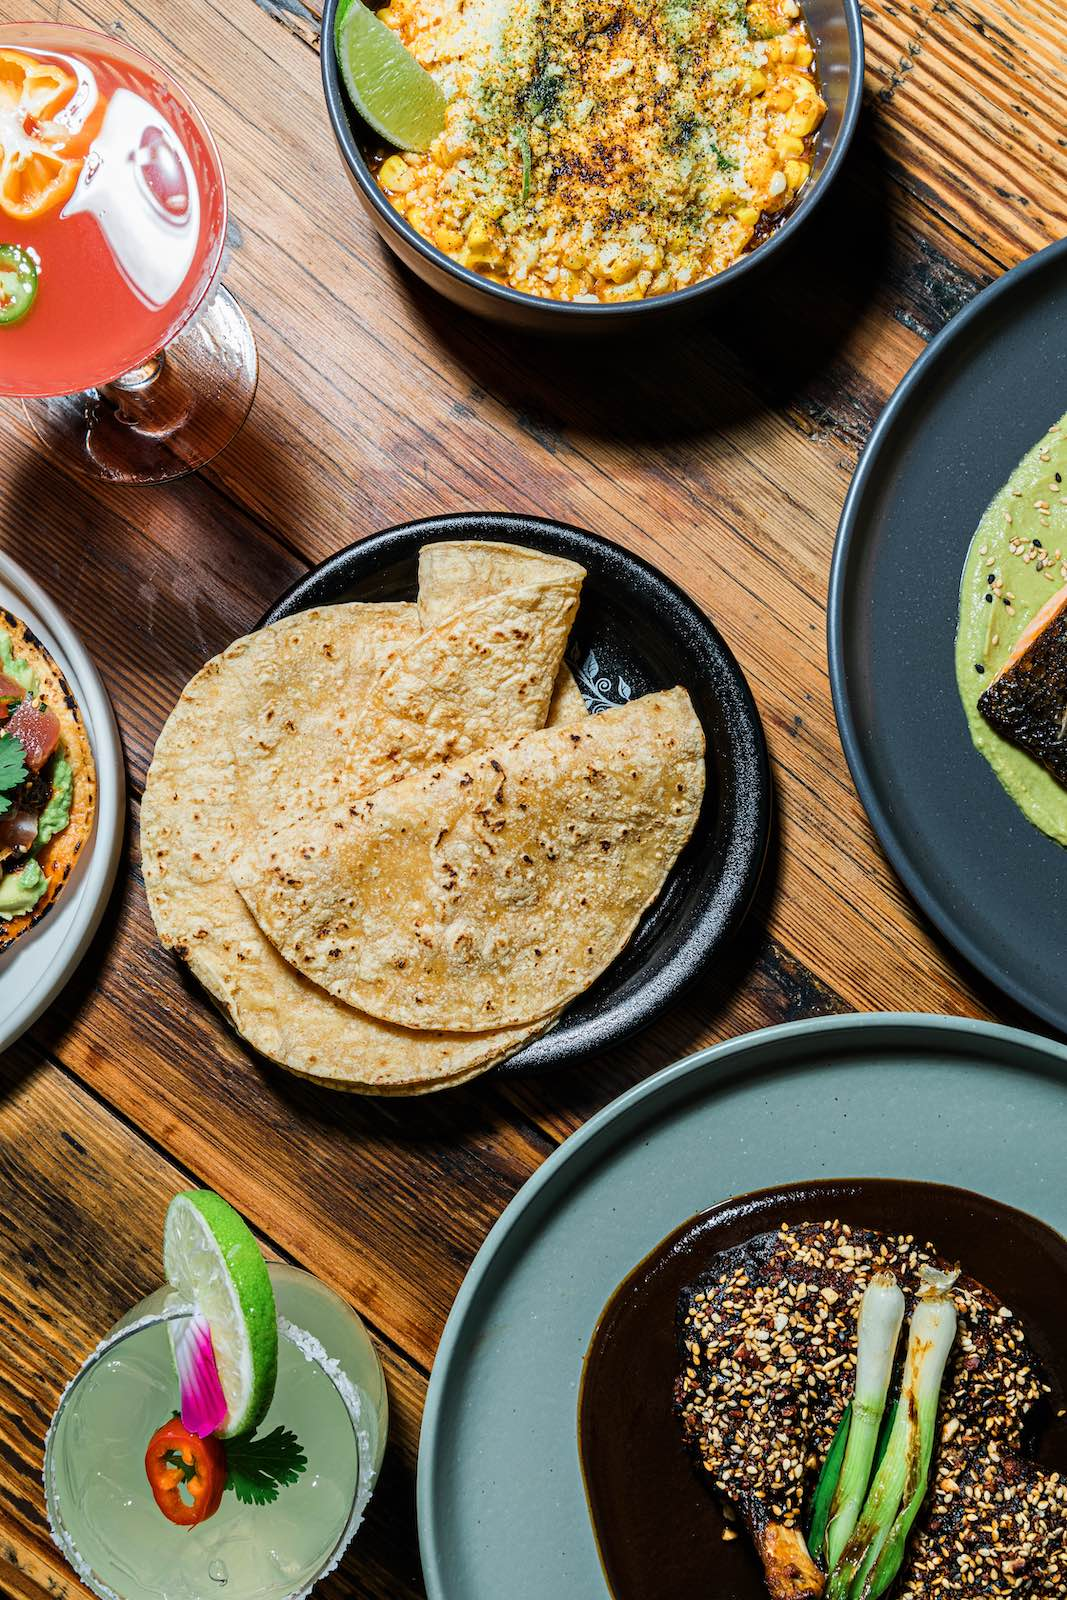 The Maya offering includes handmade tortillas and coastal-inflected Mexican dishes